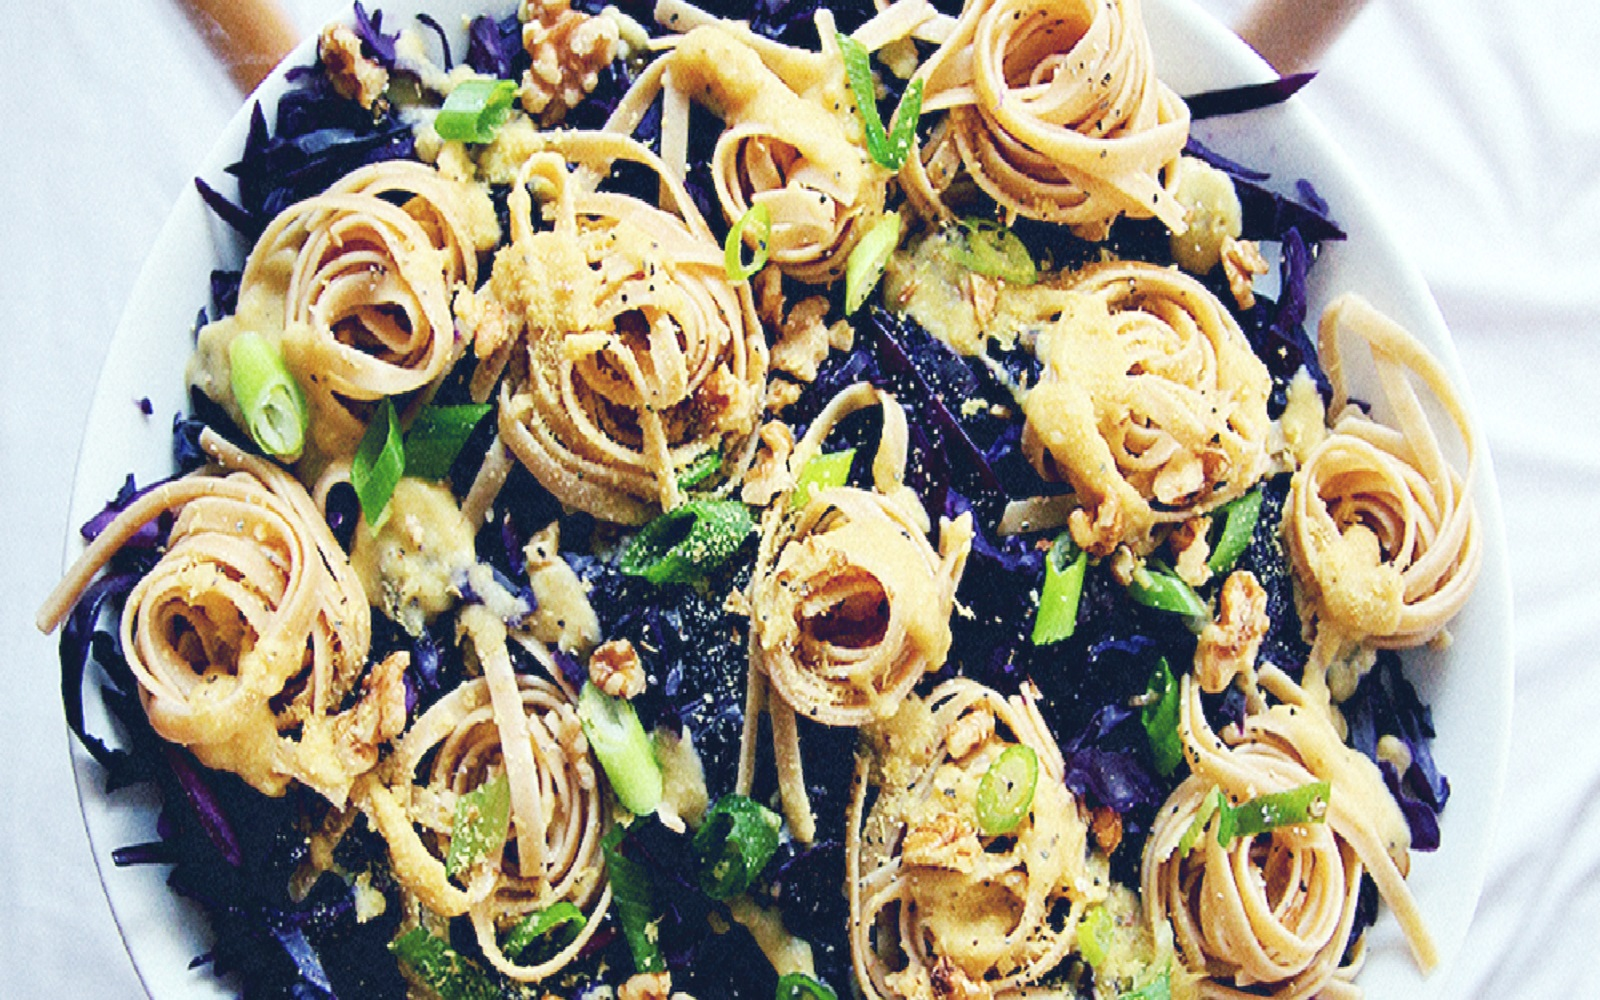 Fettuccine With Garlicky Purple Cabbage and Cheesy Chickpea Sauce